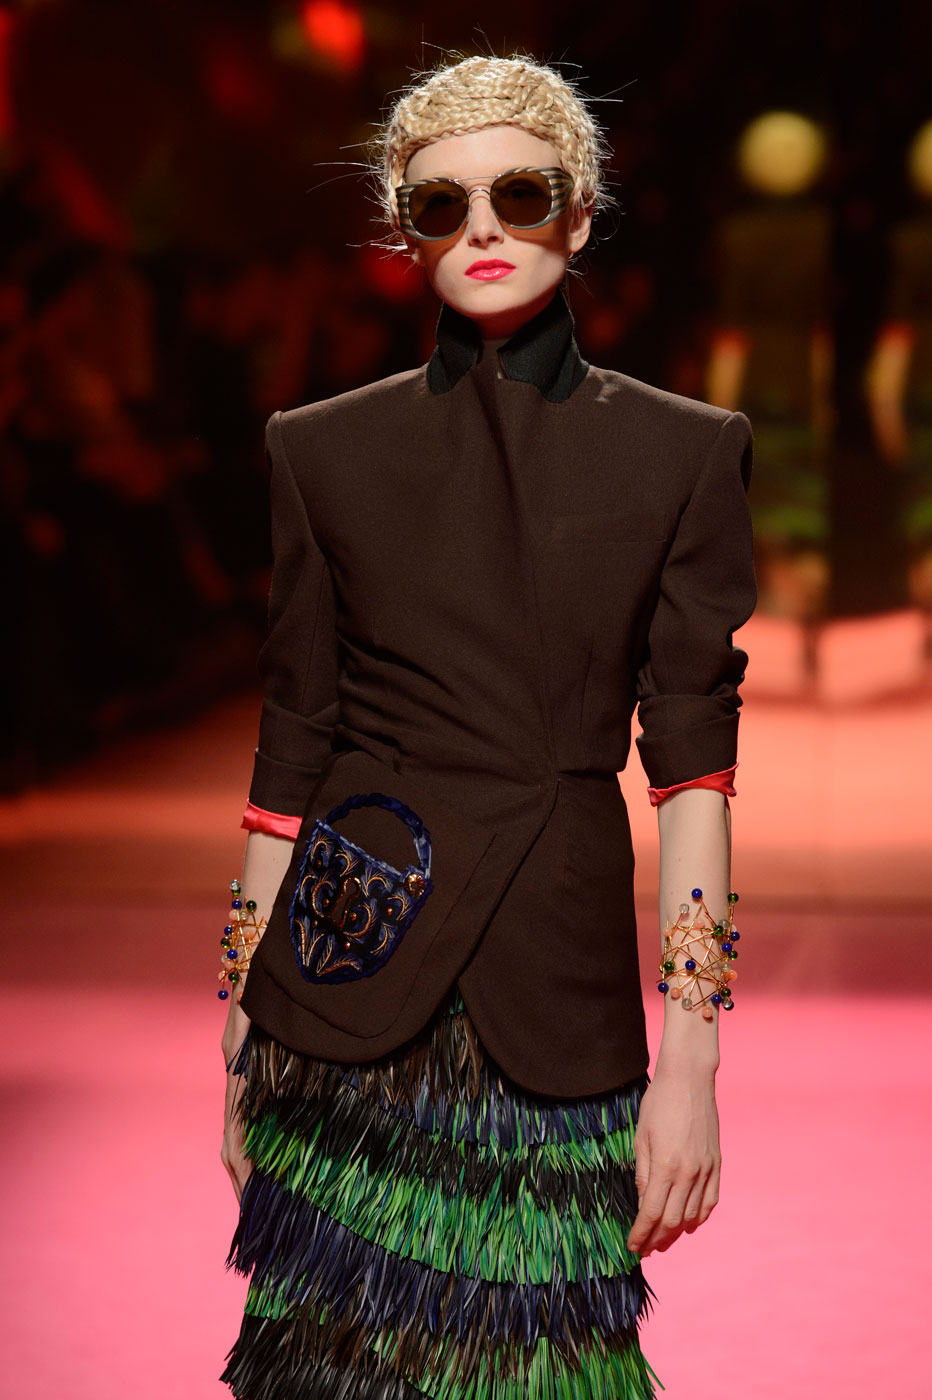 Schiaparelli-fashion-runway-show-haute-couture-paris-spring-summer-2015-the-impression-29